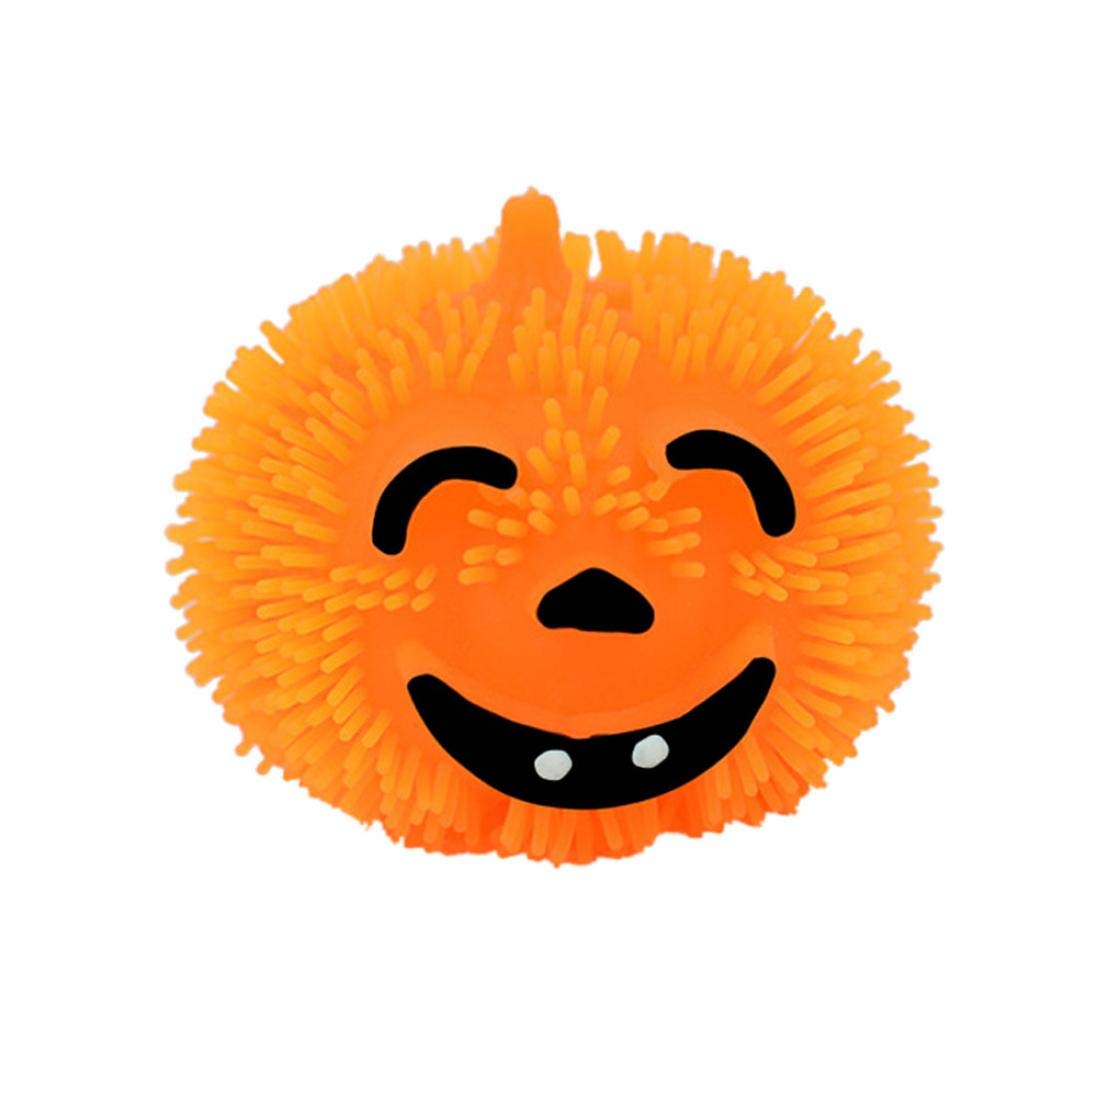 Singular-Point Halloween Toys Sale!! Light Up Halloween Pumpkin Stress Puffer Ball Release Squeeze Toy (a)